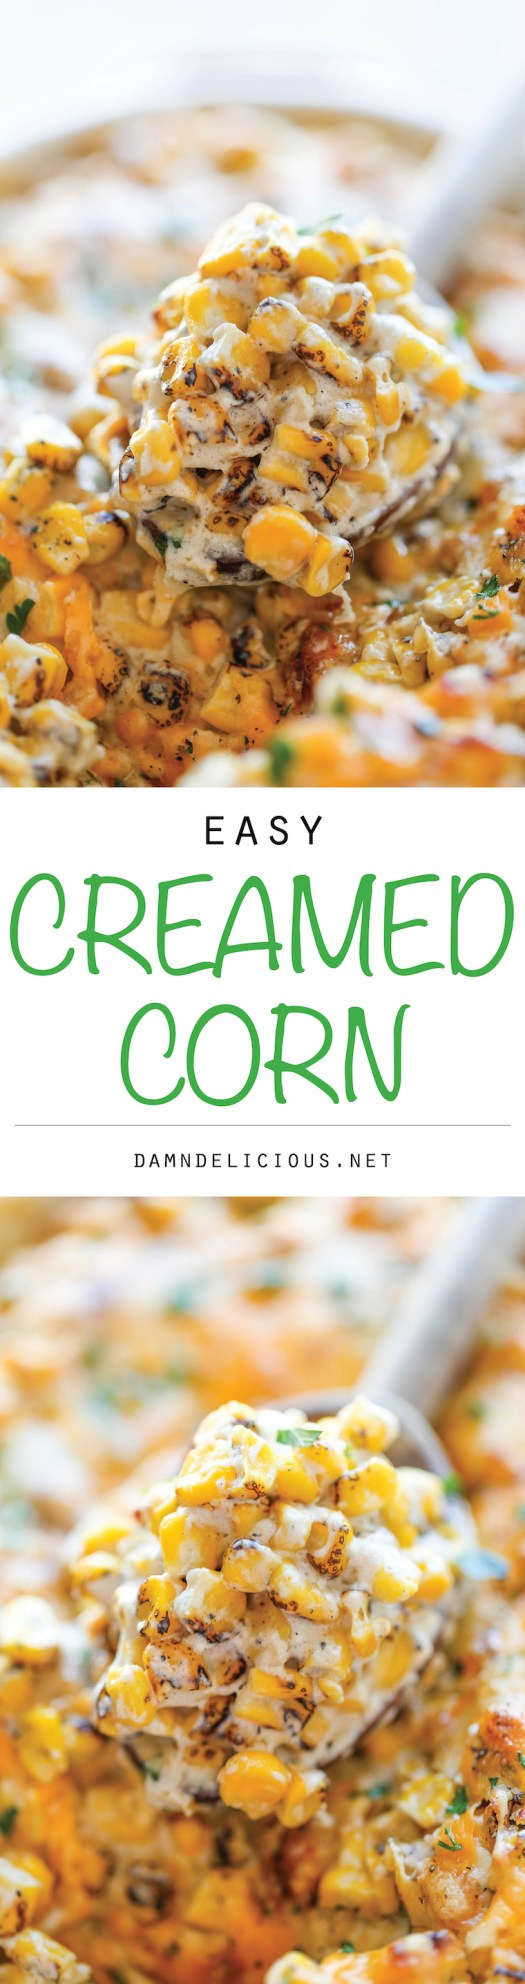 Easy Creamed Corn -The creamiest, most amazing creamed corn you will ever have – and it's so easy to make, it's practically fool-proof!